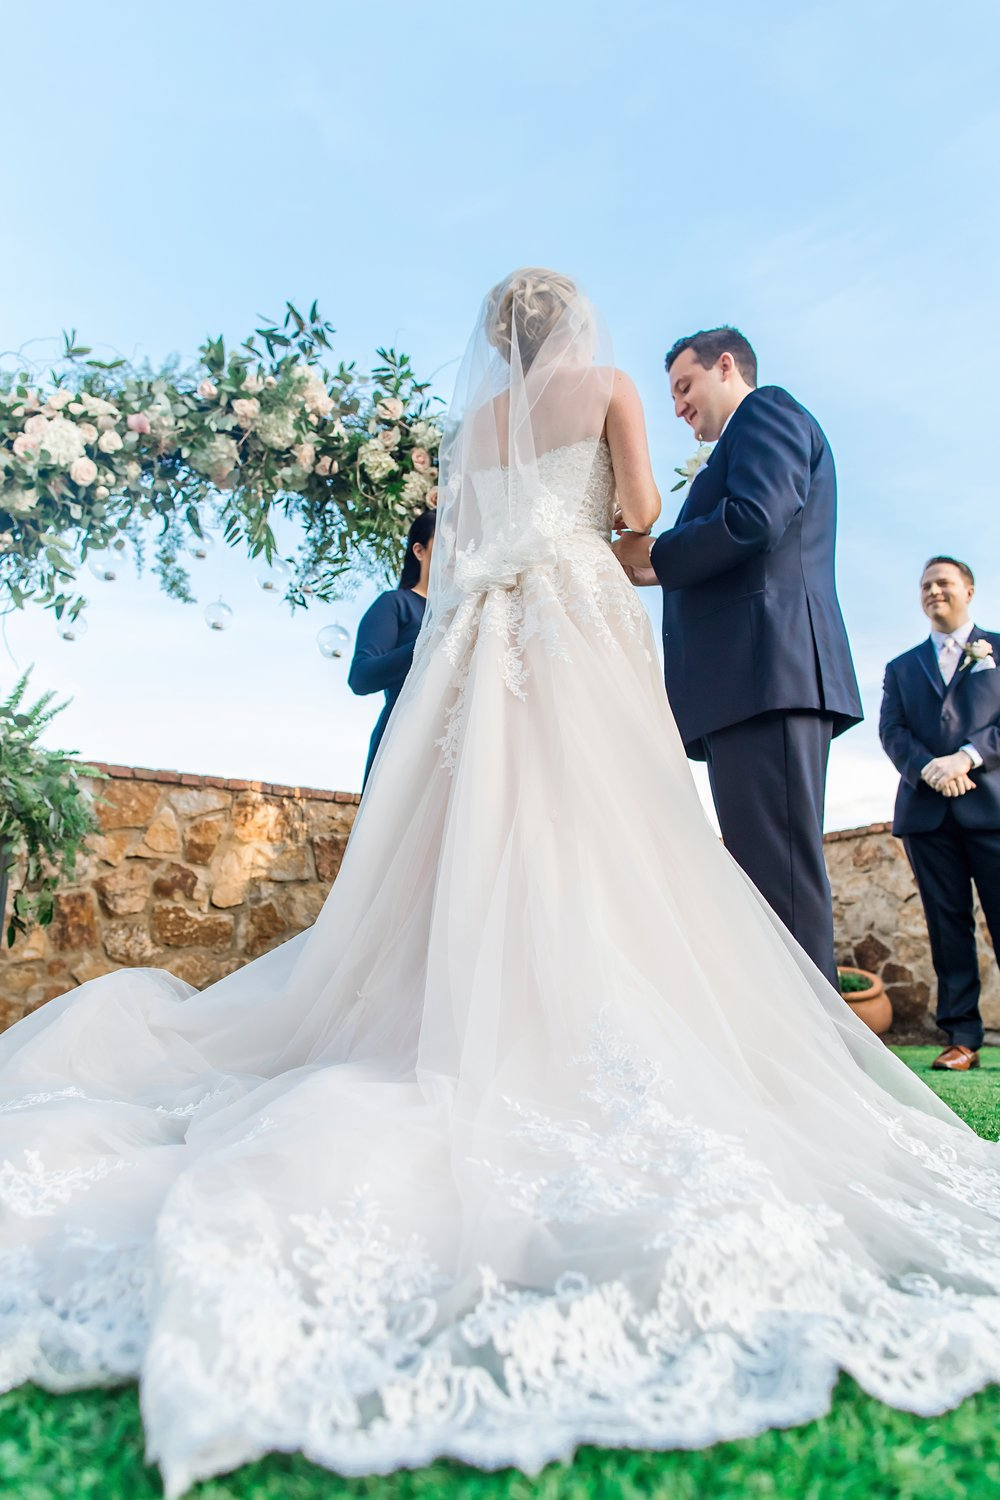 Wedding day bella Collina.jpg